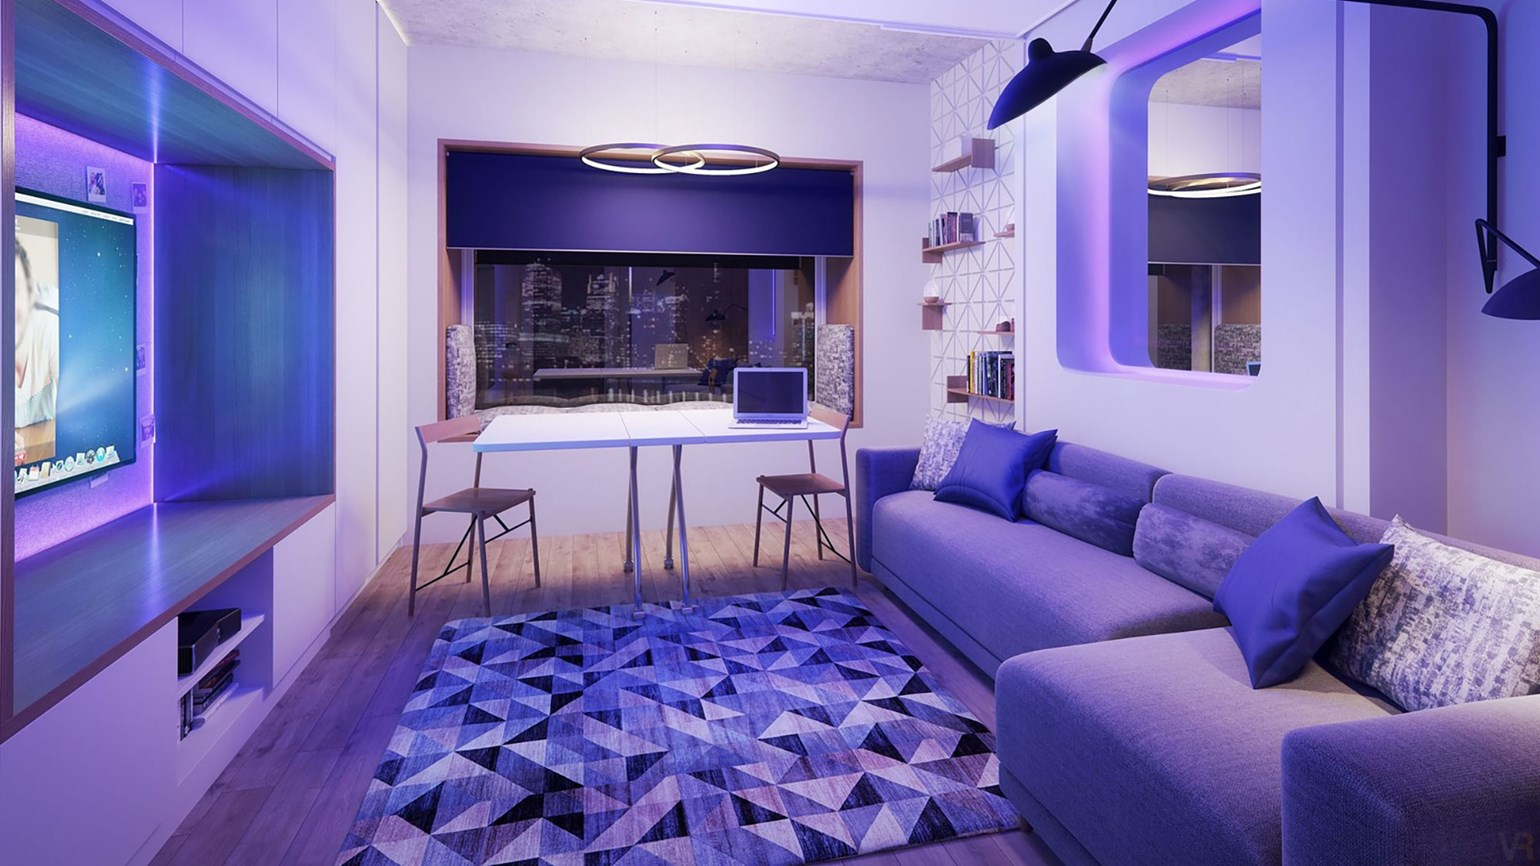 Yotel launches extended-stay brand